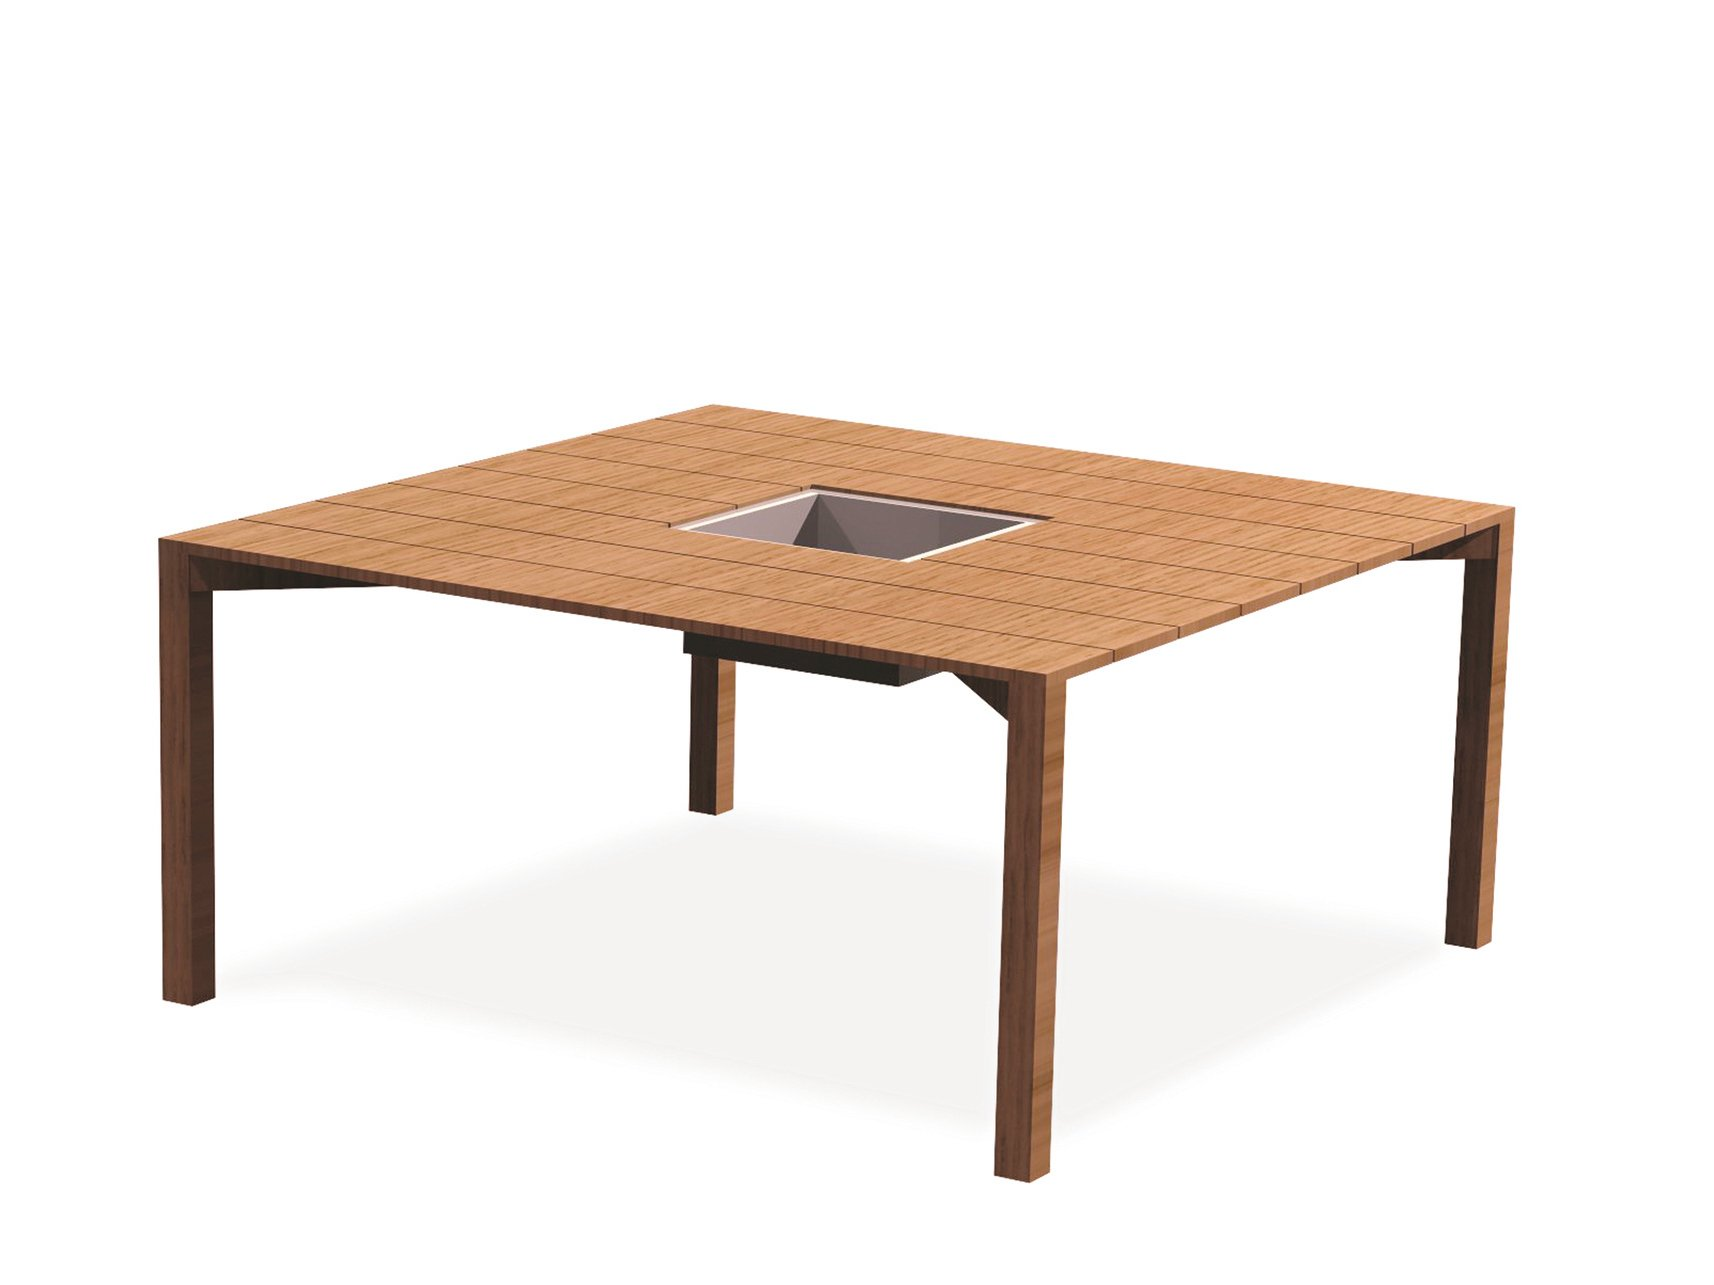 Table de jardin carr e en teck oxn collection oxn by for Table jardin en teck